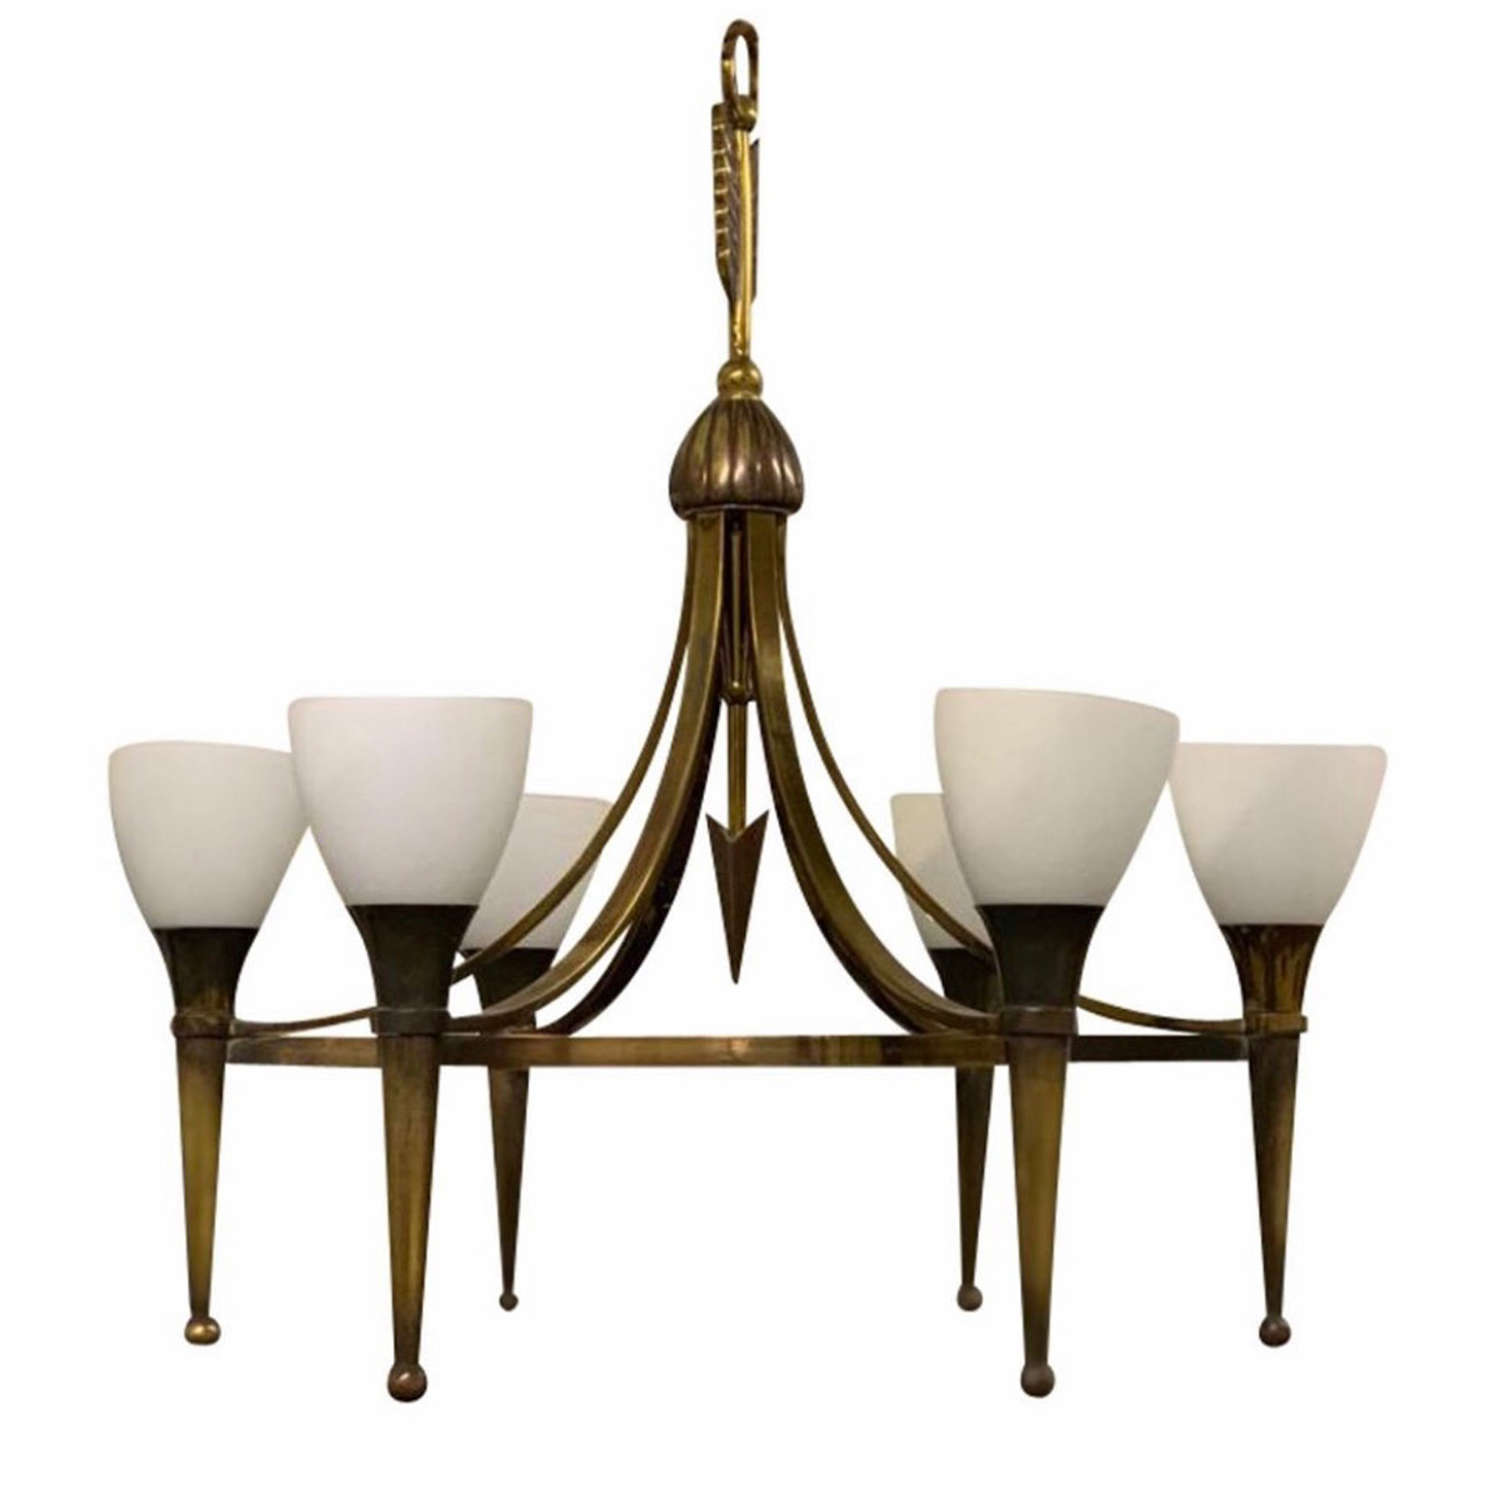 1940's Andre Arbus Brass Arrow Chandelier